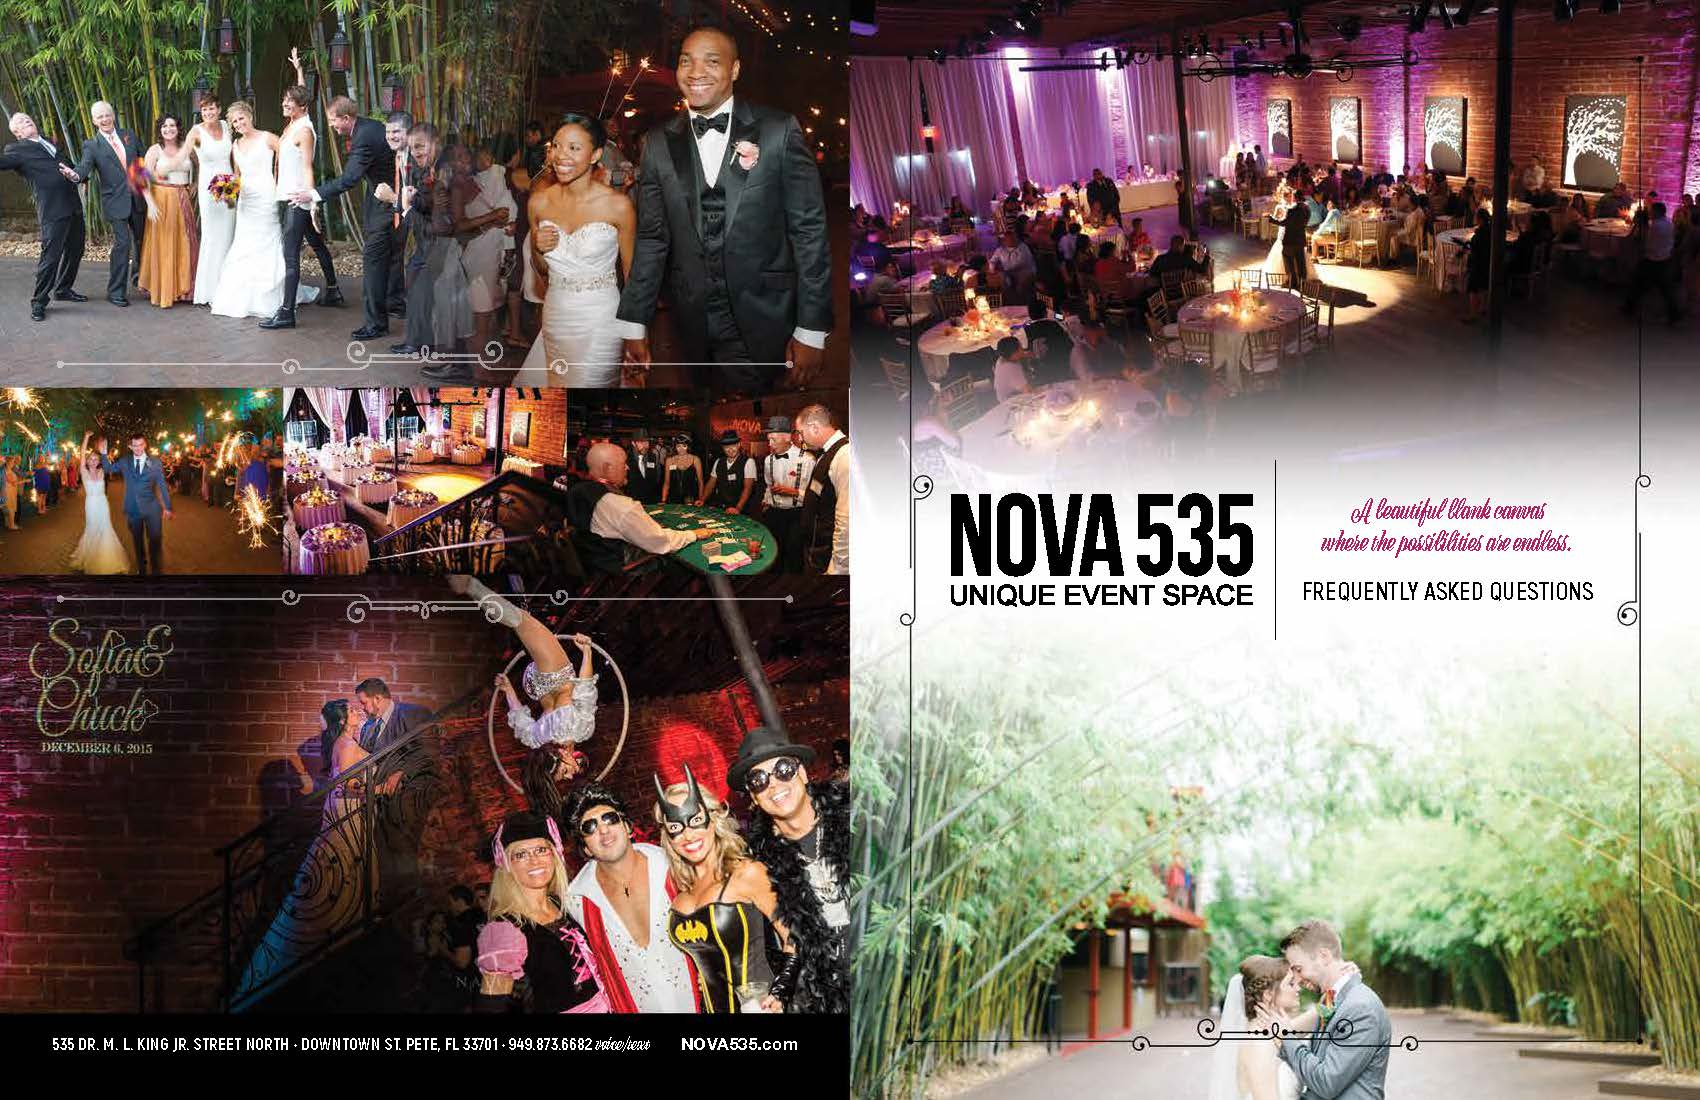 Historic Downtown St. Pete venue NOVA 535